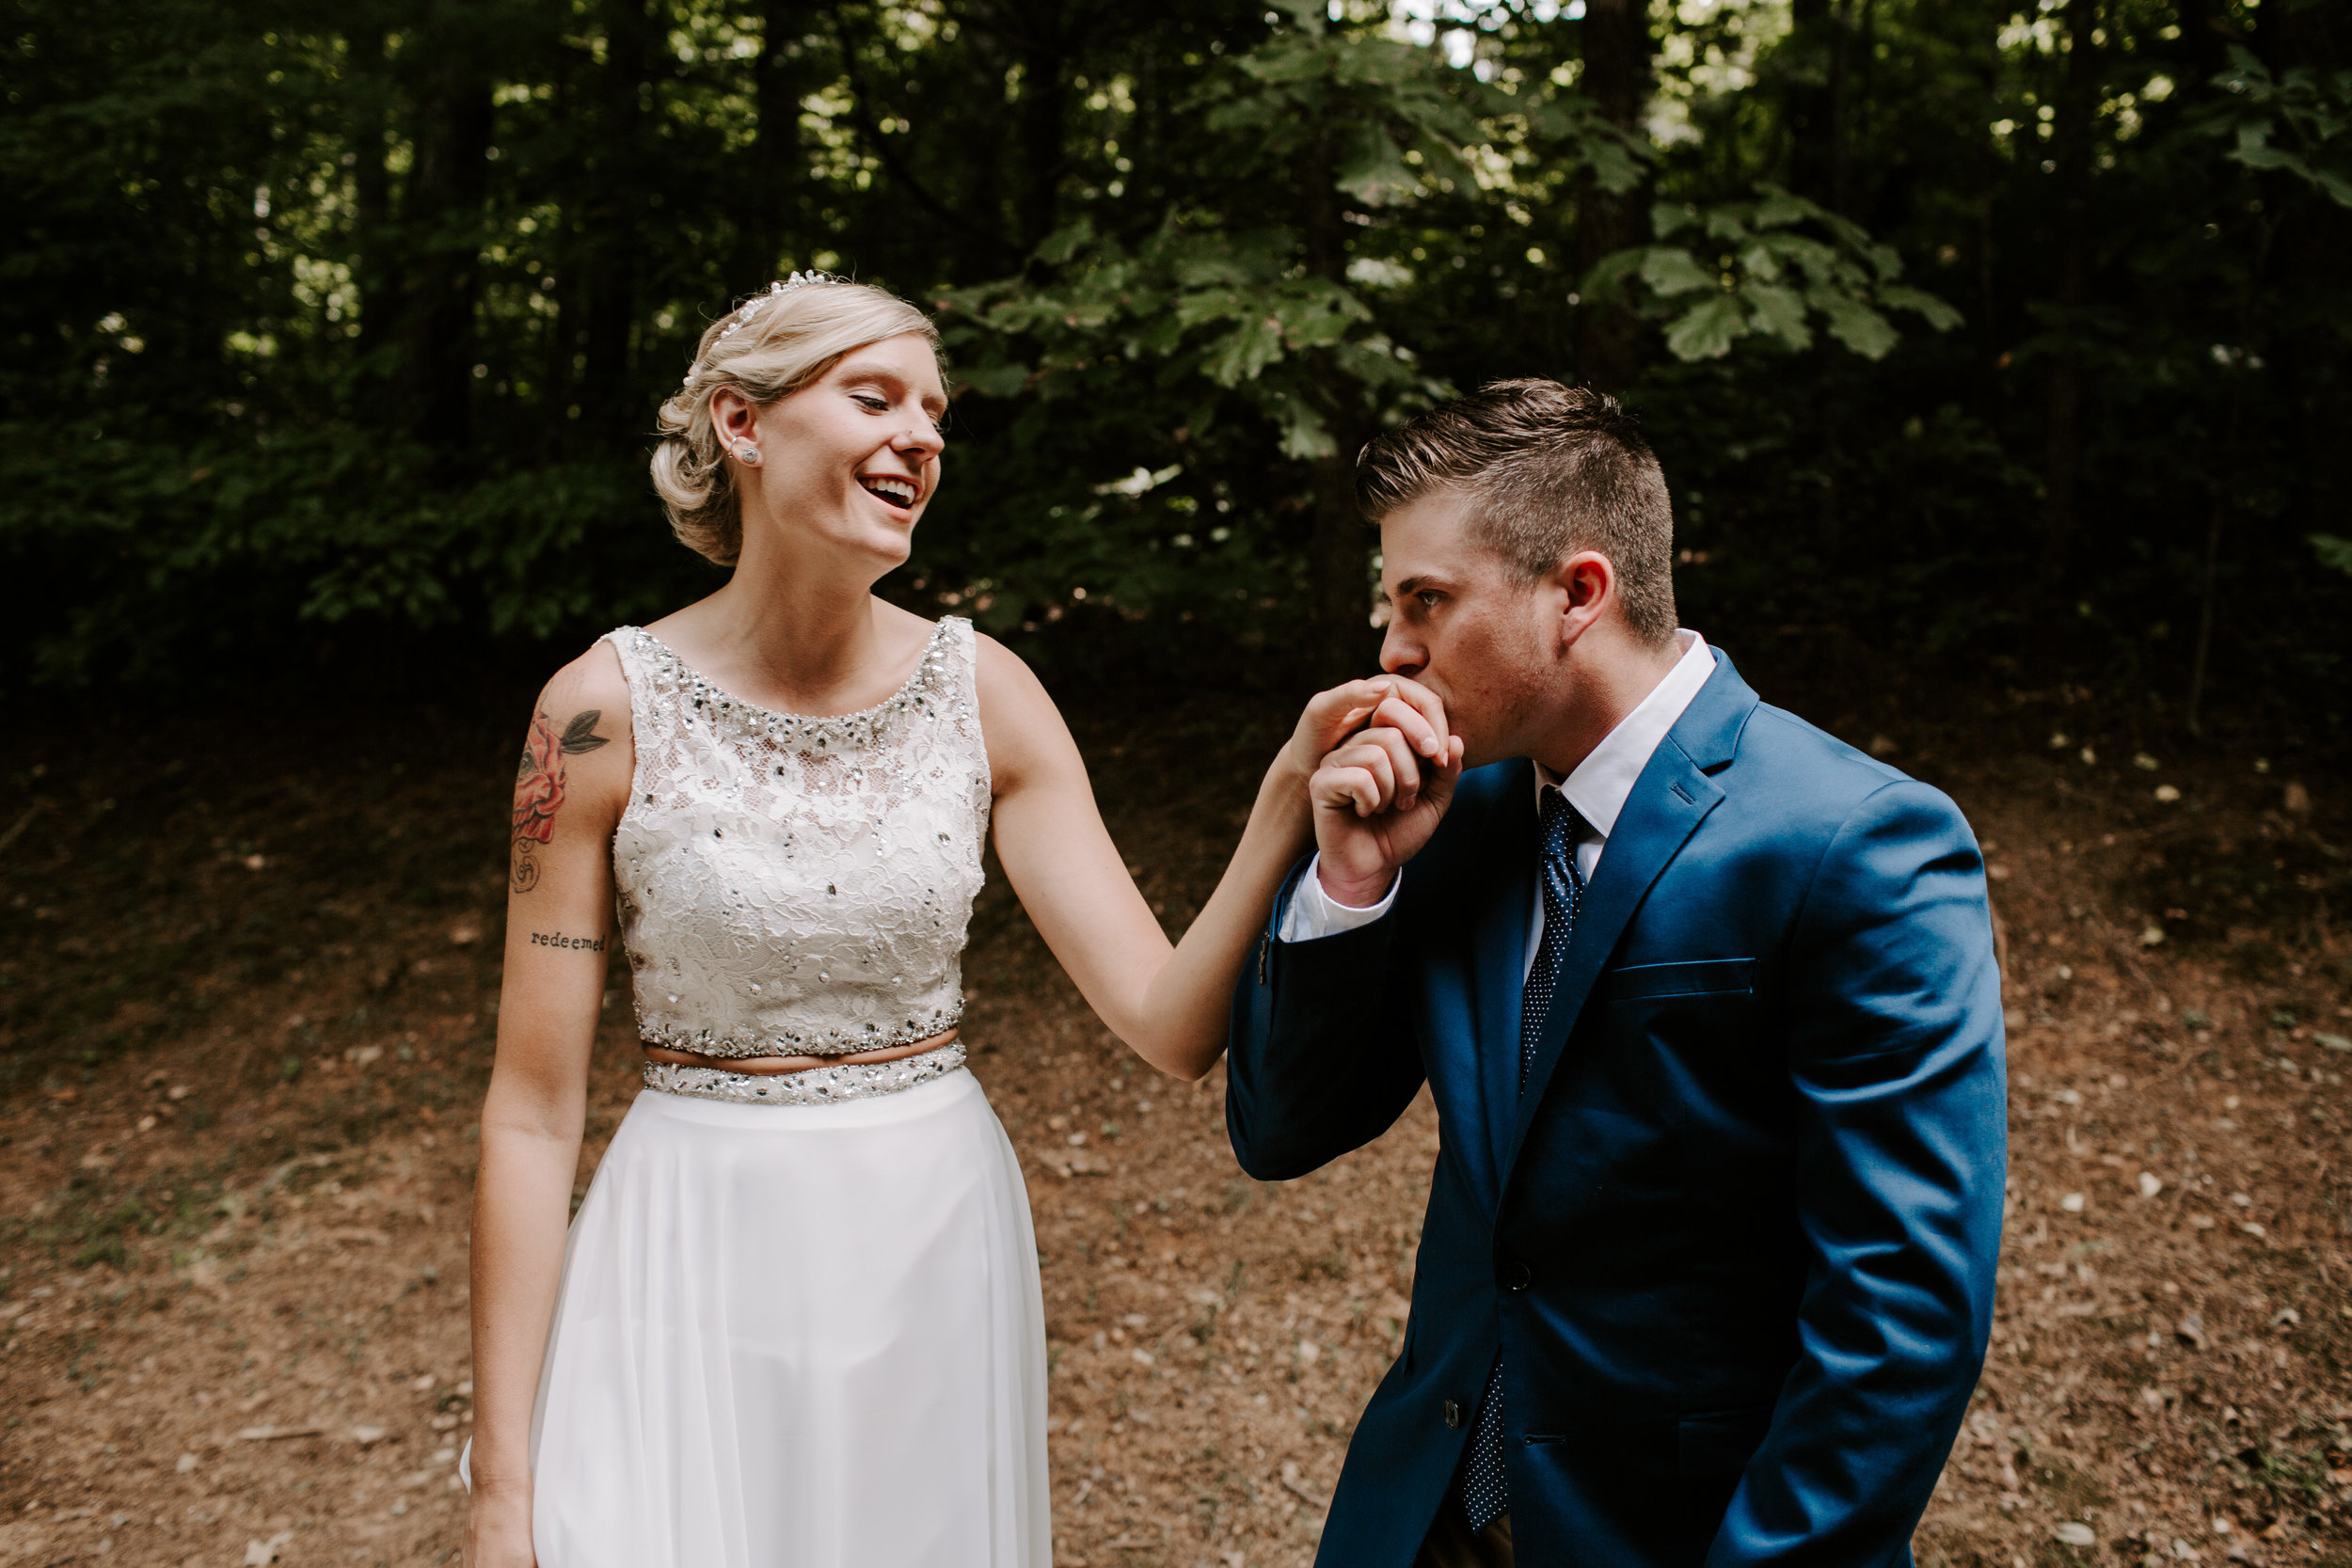 Miranda&braedon_ashevilleelopement (63 of 101).jpg